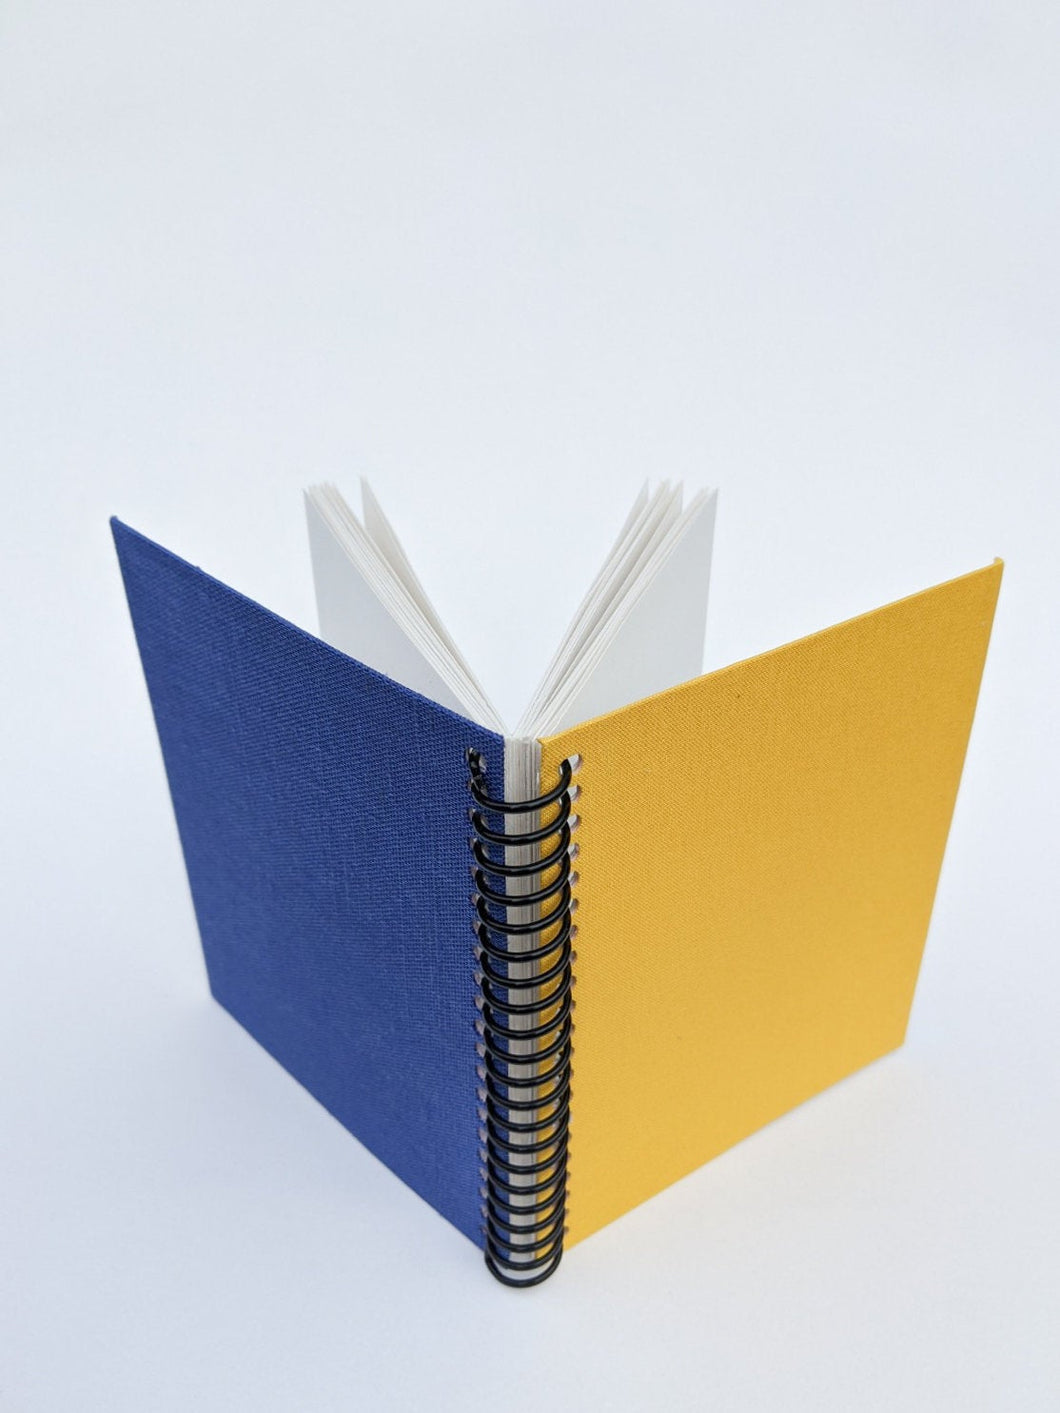 Small Yellow and Blue Cloth Coil Sketchbook